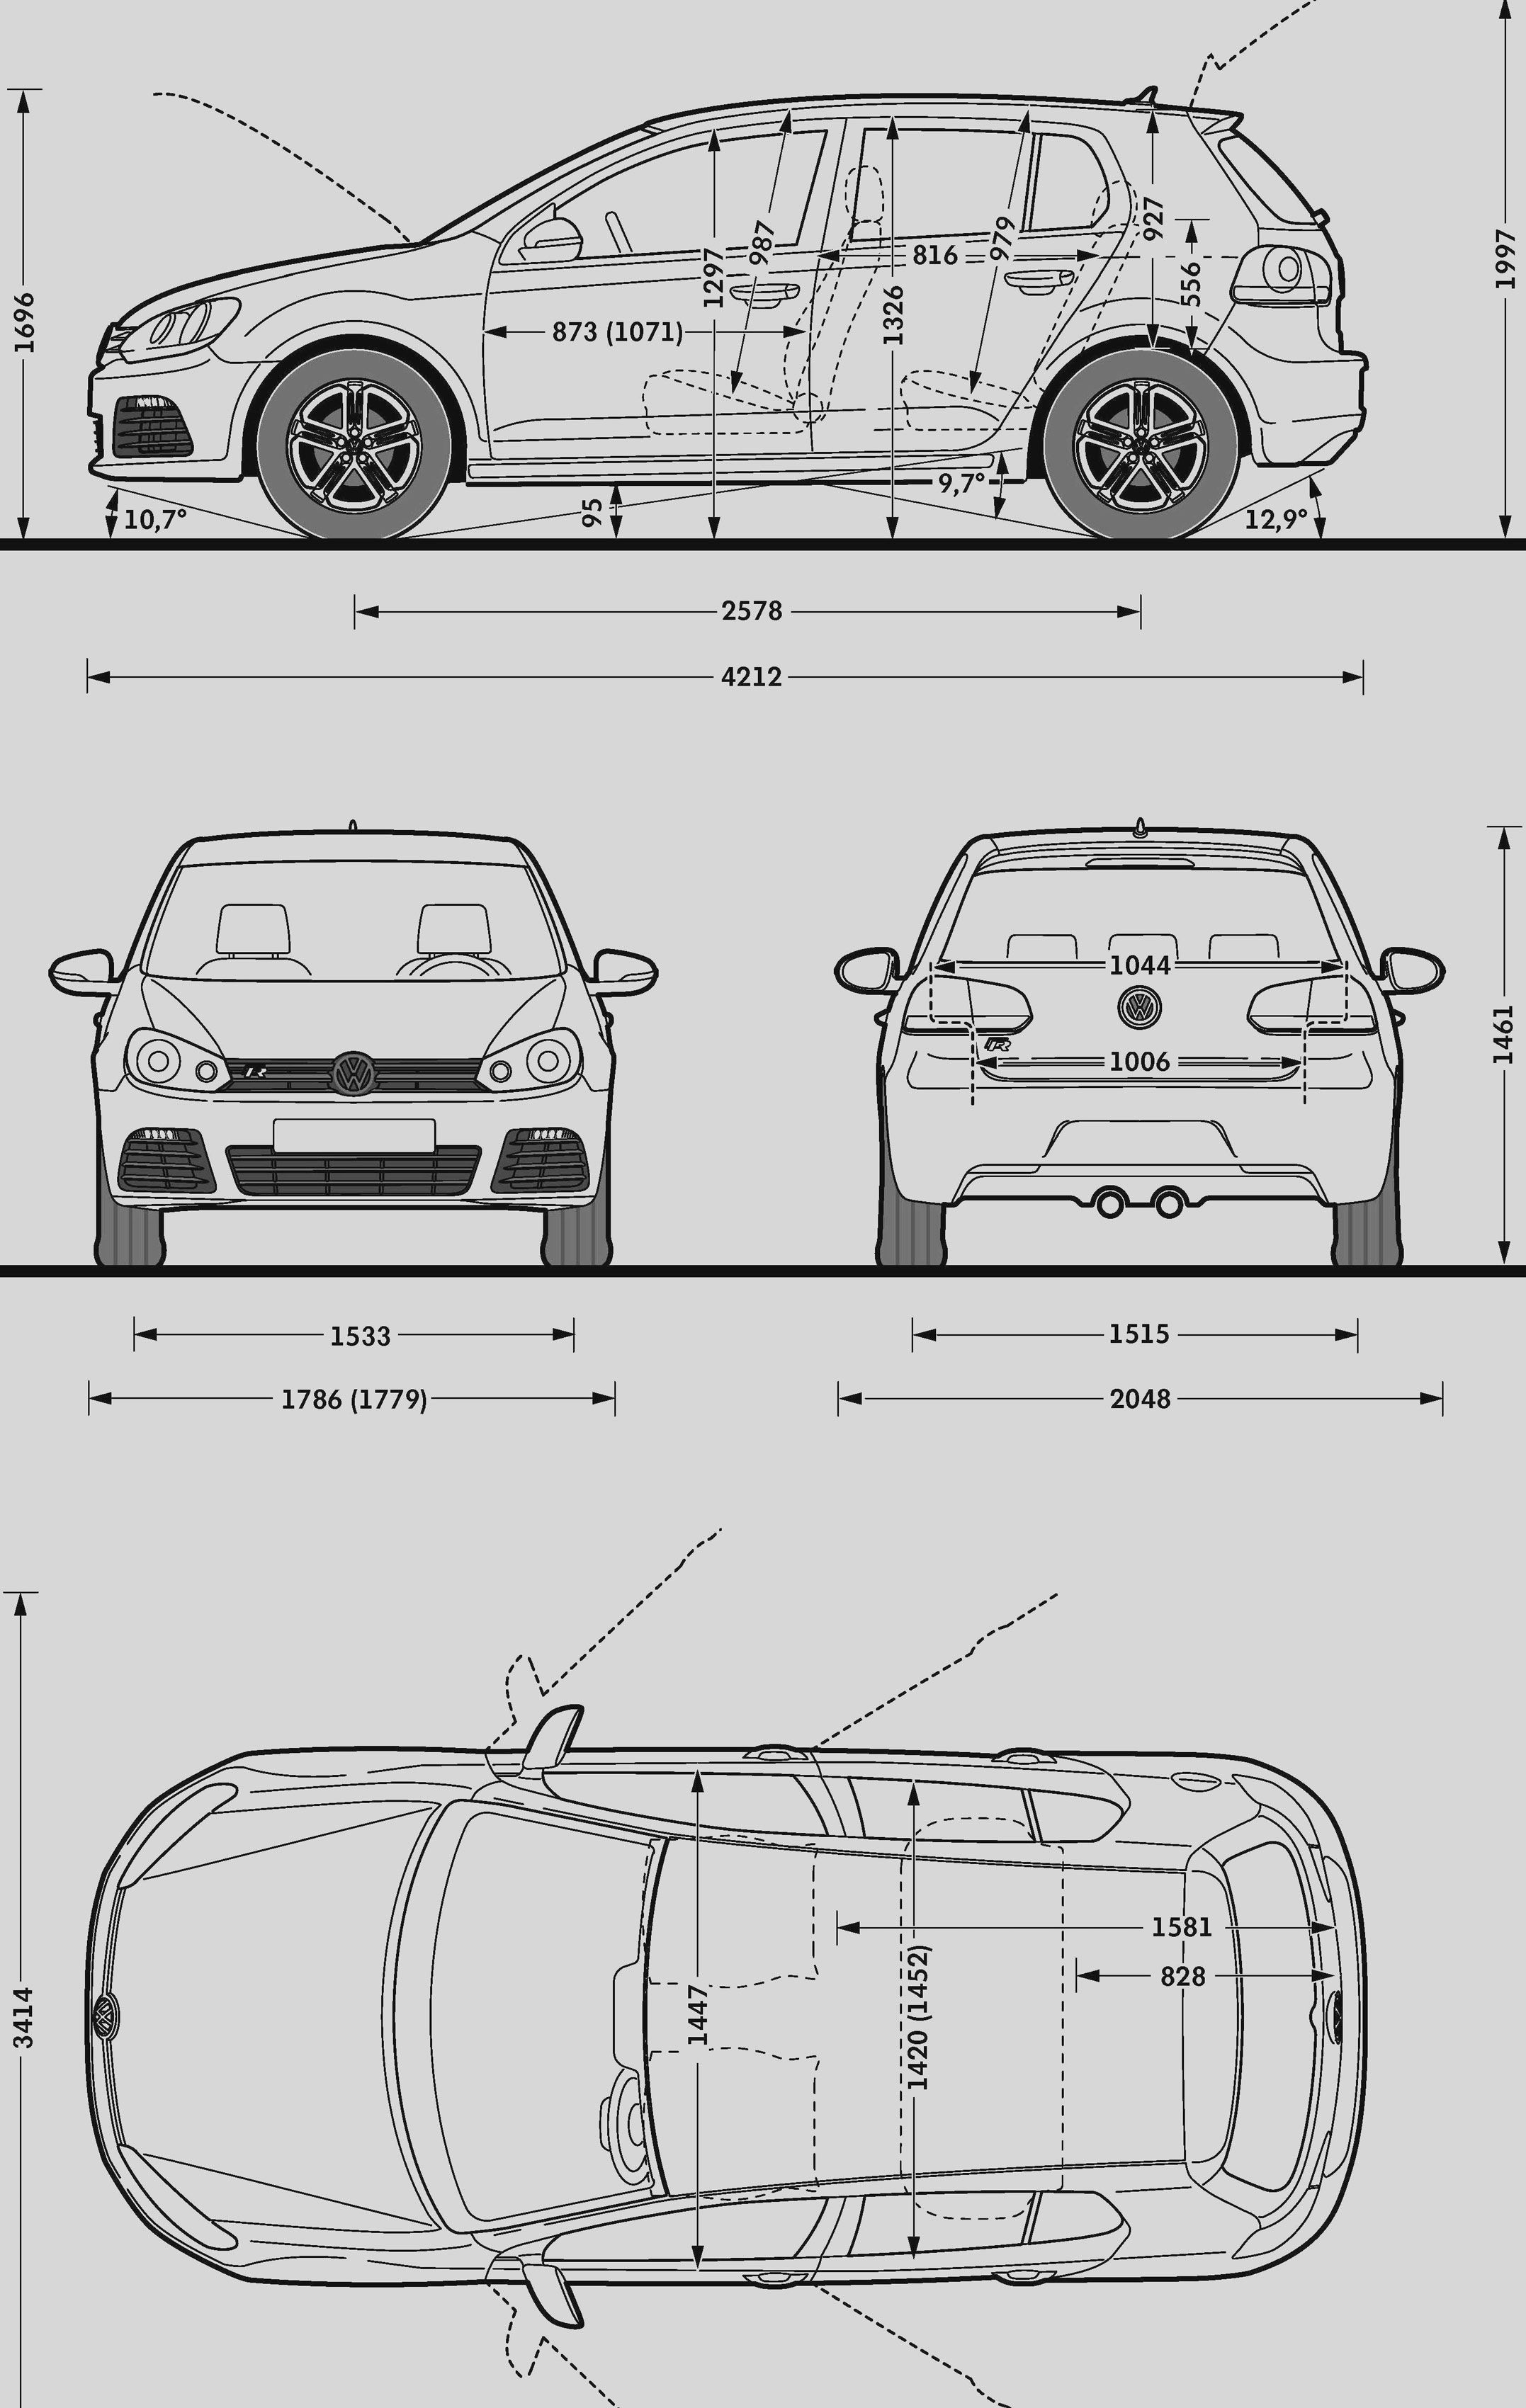 Vw Golf R Model Sheet